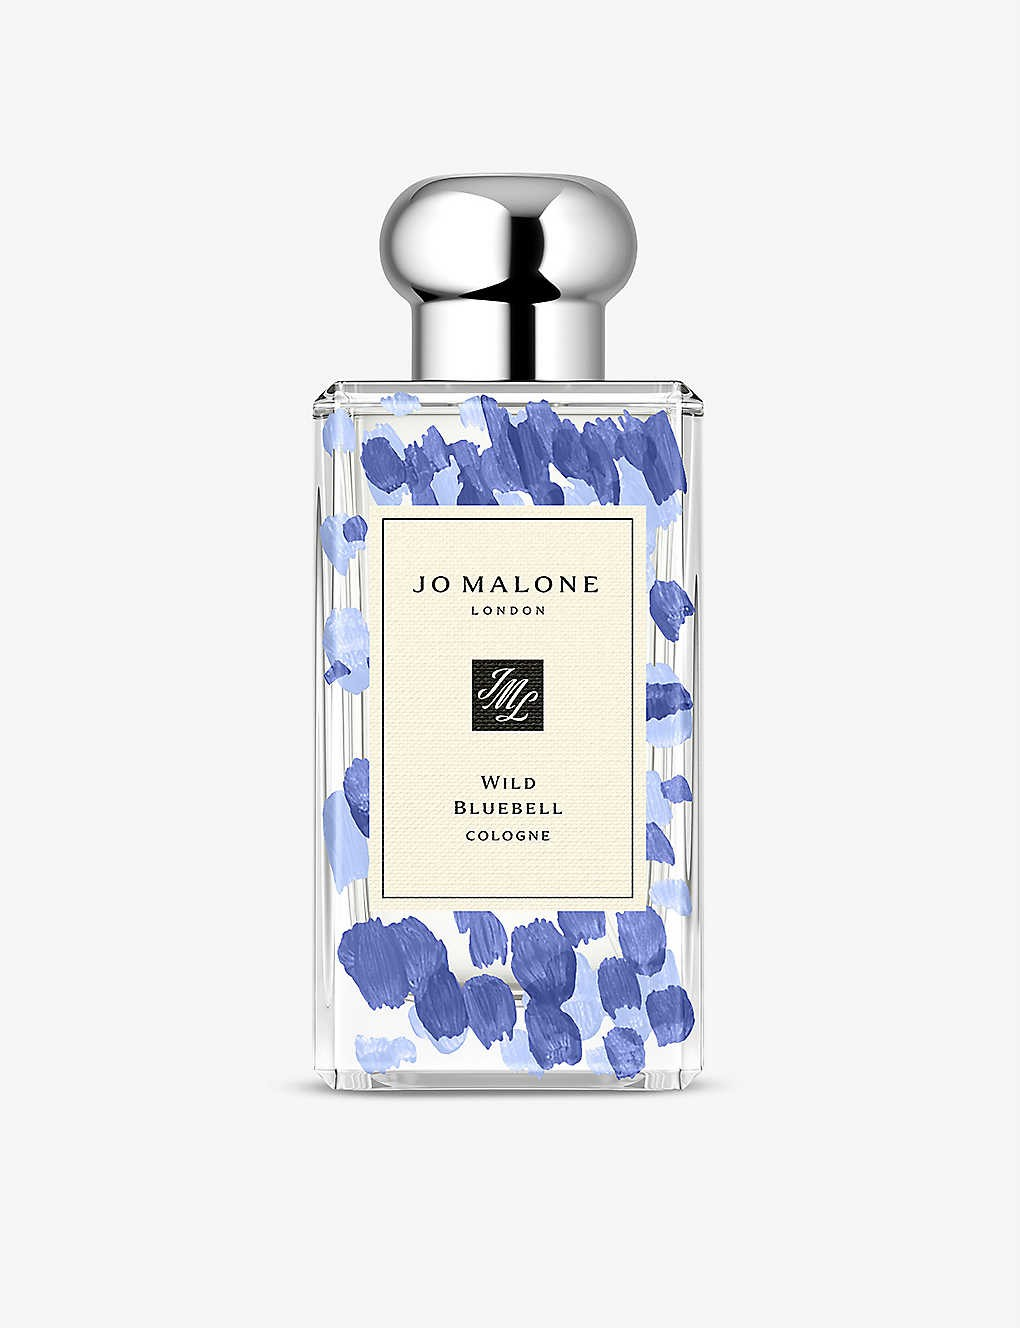 Изображение парфюма Jo Malone Wild Bluebell Limited Edition